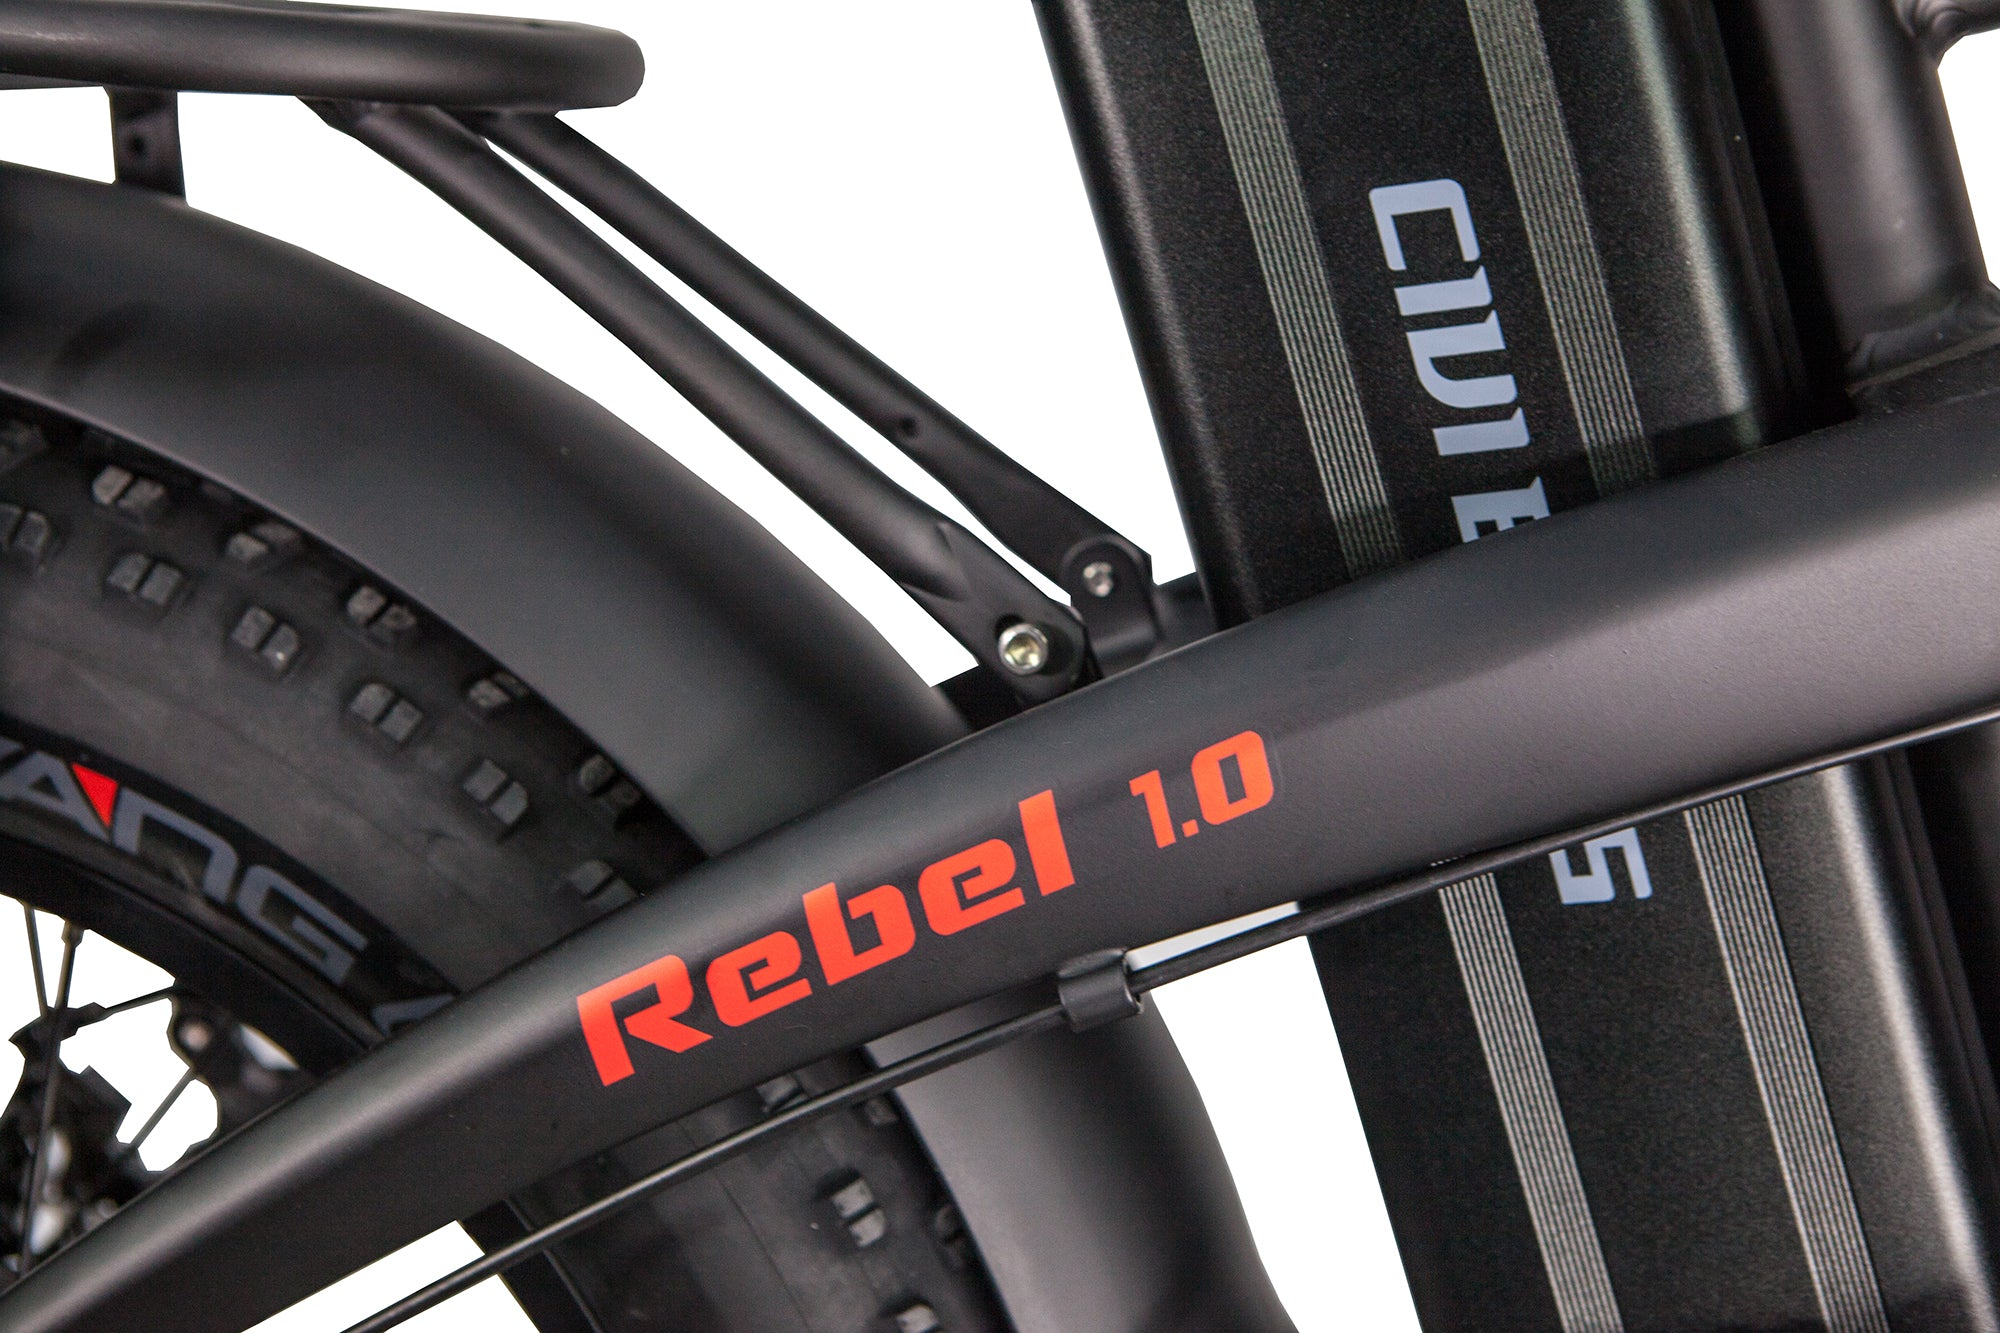 Rebel 1.0 - In Stock